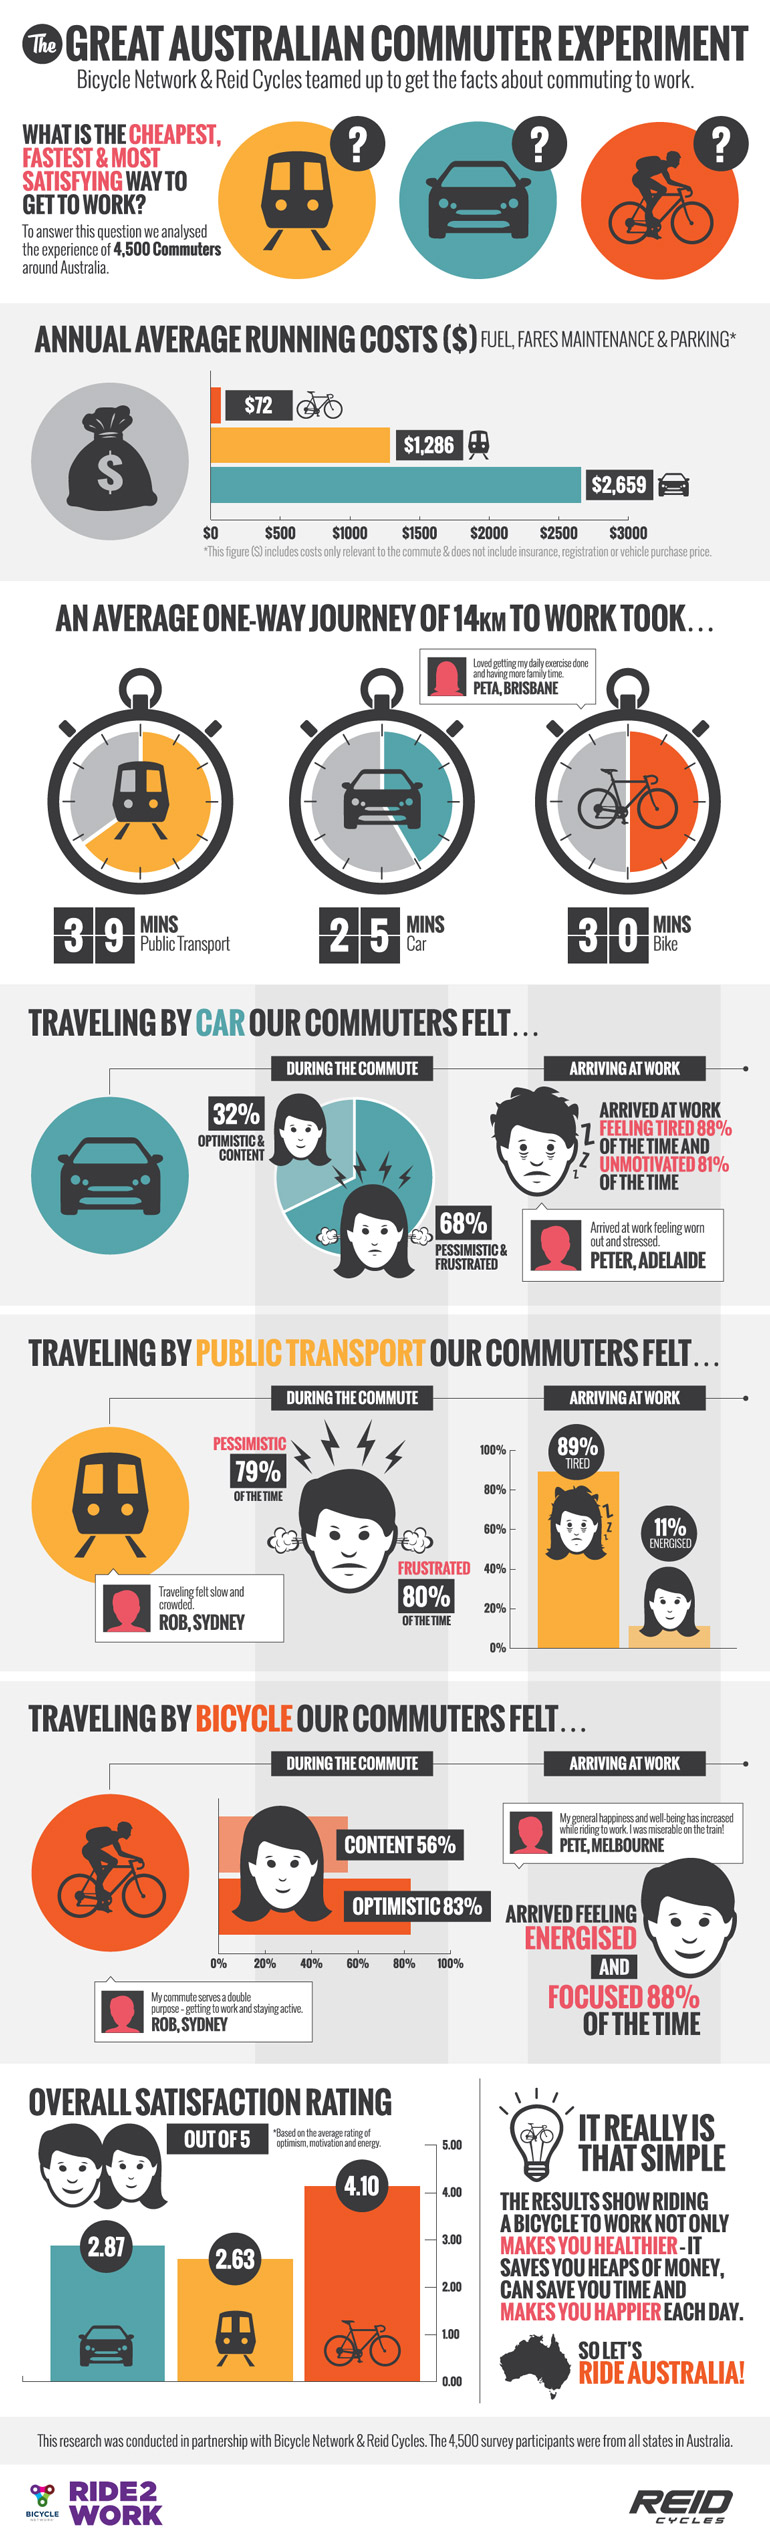 greatcommuterexperiment-infographic